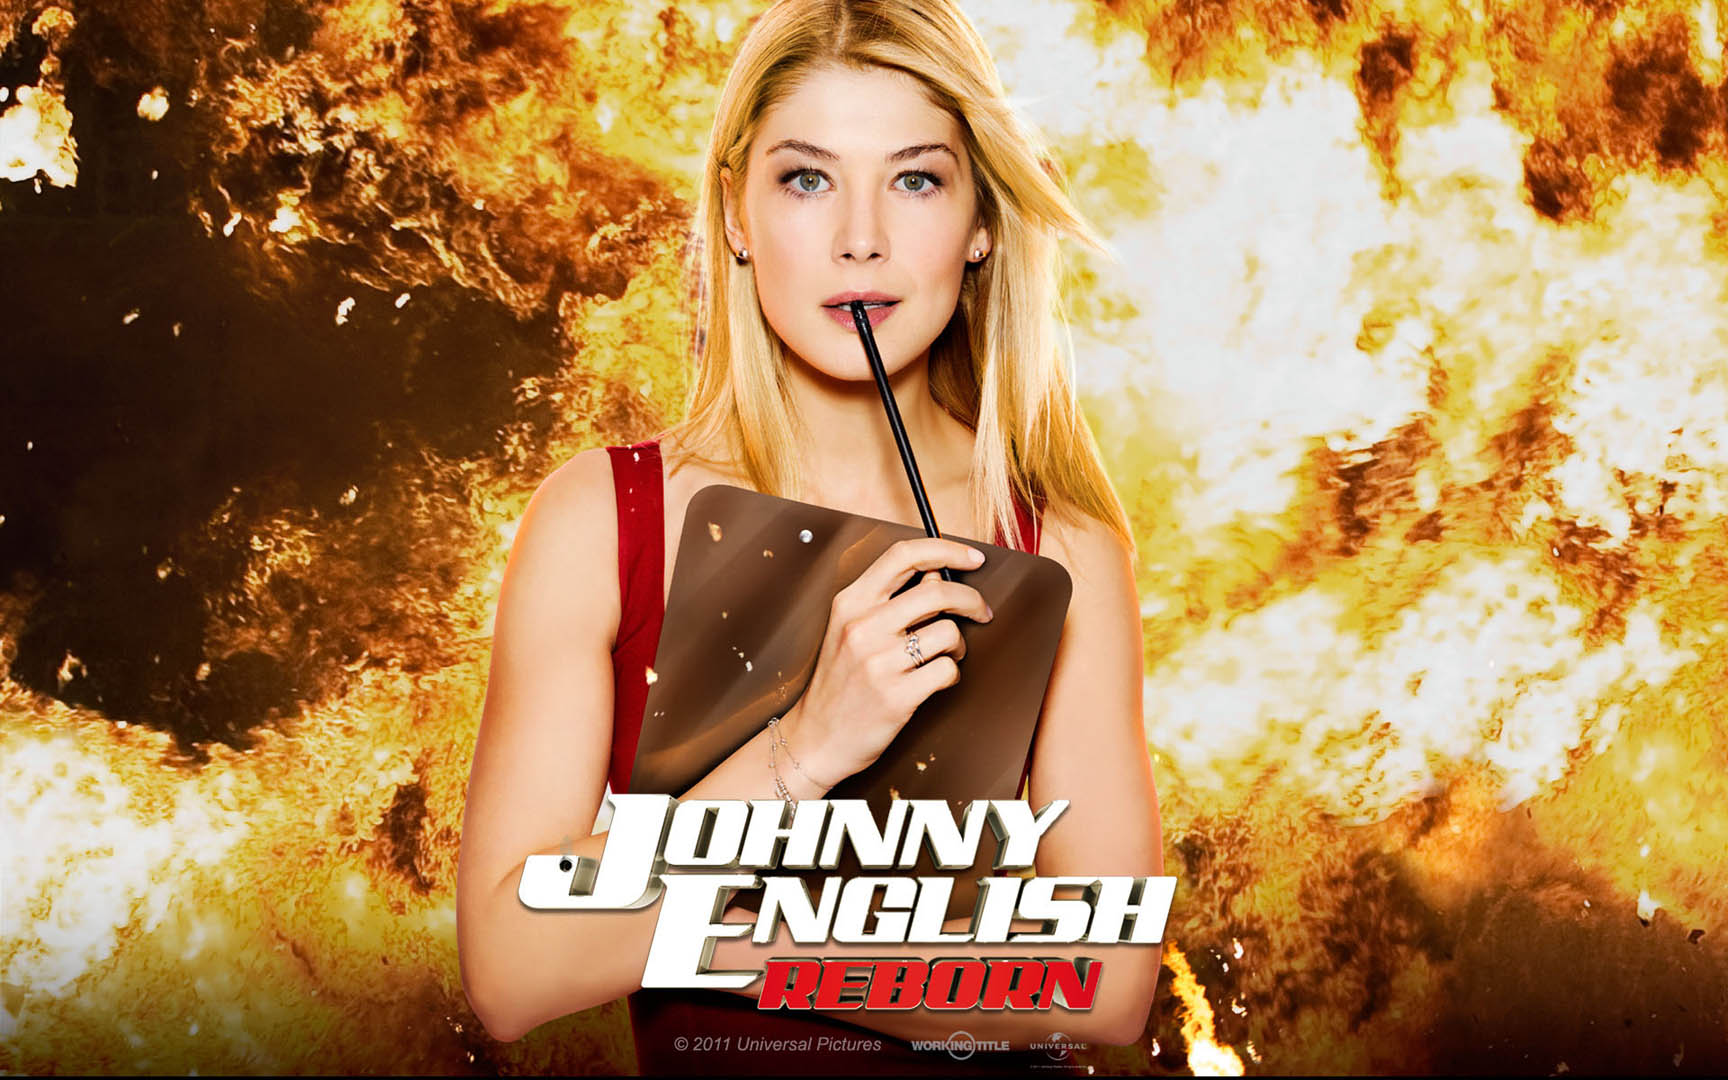 Comedy Johnny English Reborn Girl 1